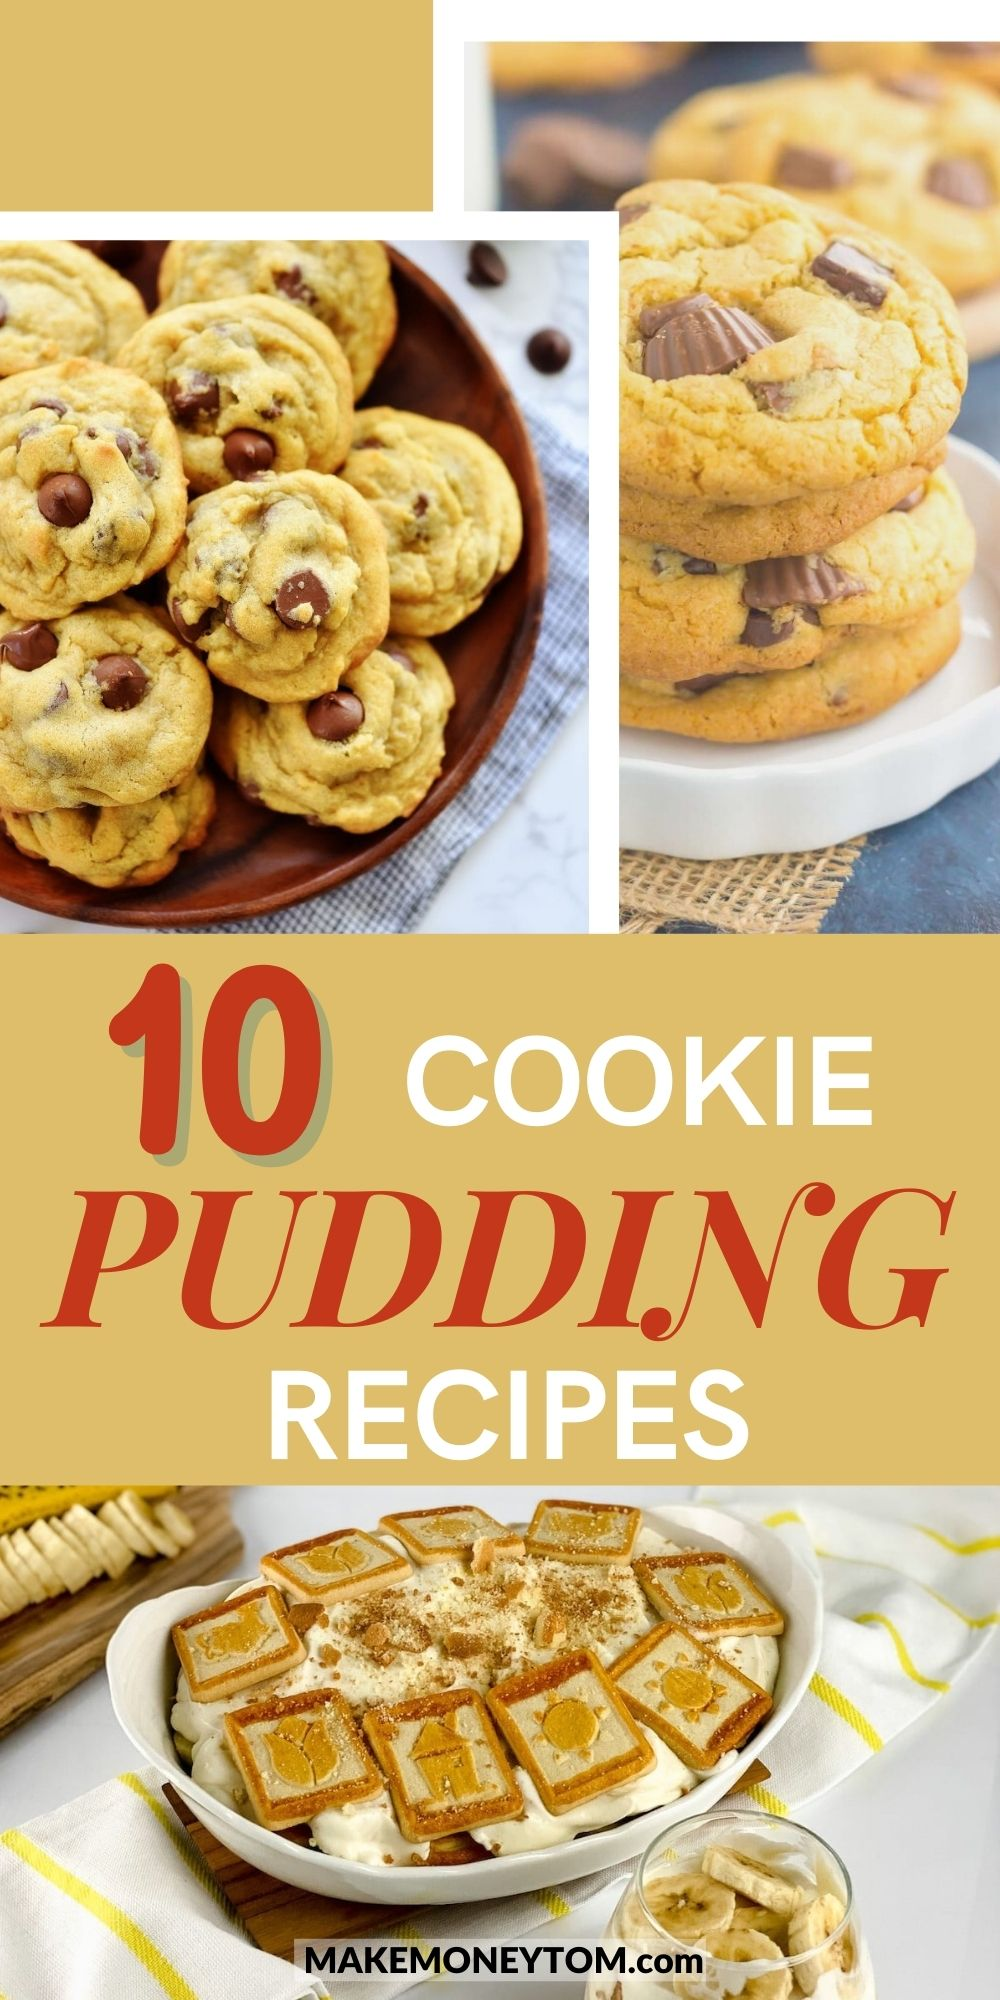 10 Delicious Cookie Pudding Recipes - Healthy Cookie Recipes